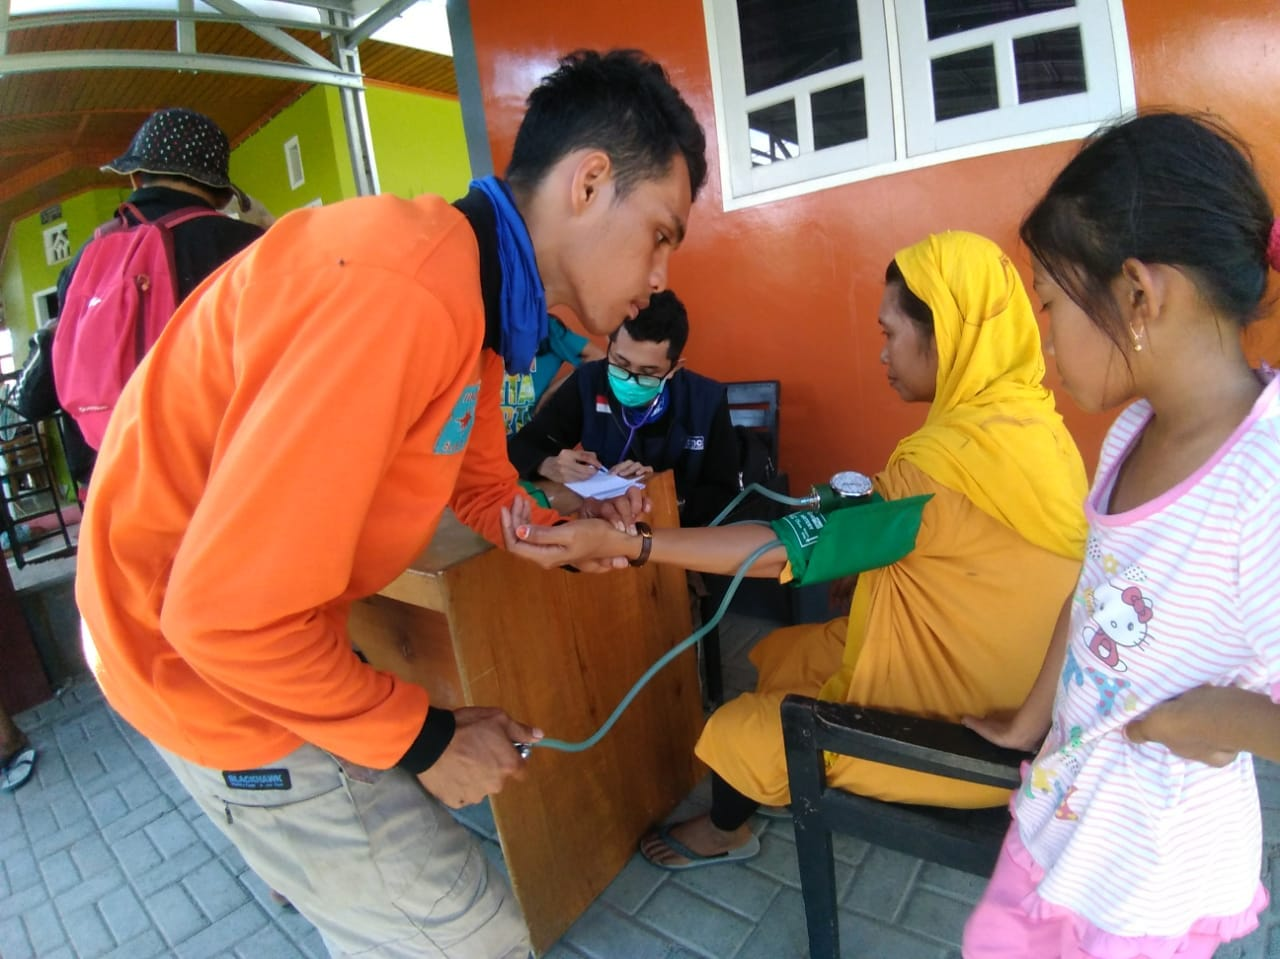 A Muhammadiyah volunteer measures the blood pressure of a woman seeking care at one of the organization's medical outposts set up in Palu, Indonesia, after last week's earthquake and tsunami. Muhammadiyah is one of the local groups Direct Relief is supporting. (Photo courtesy of Muhammadiyah)